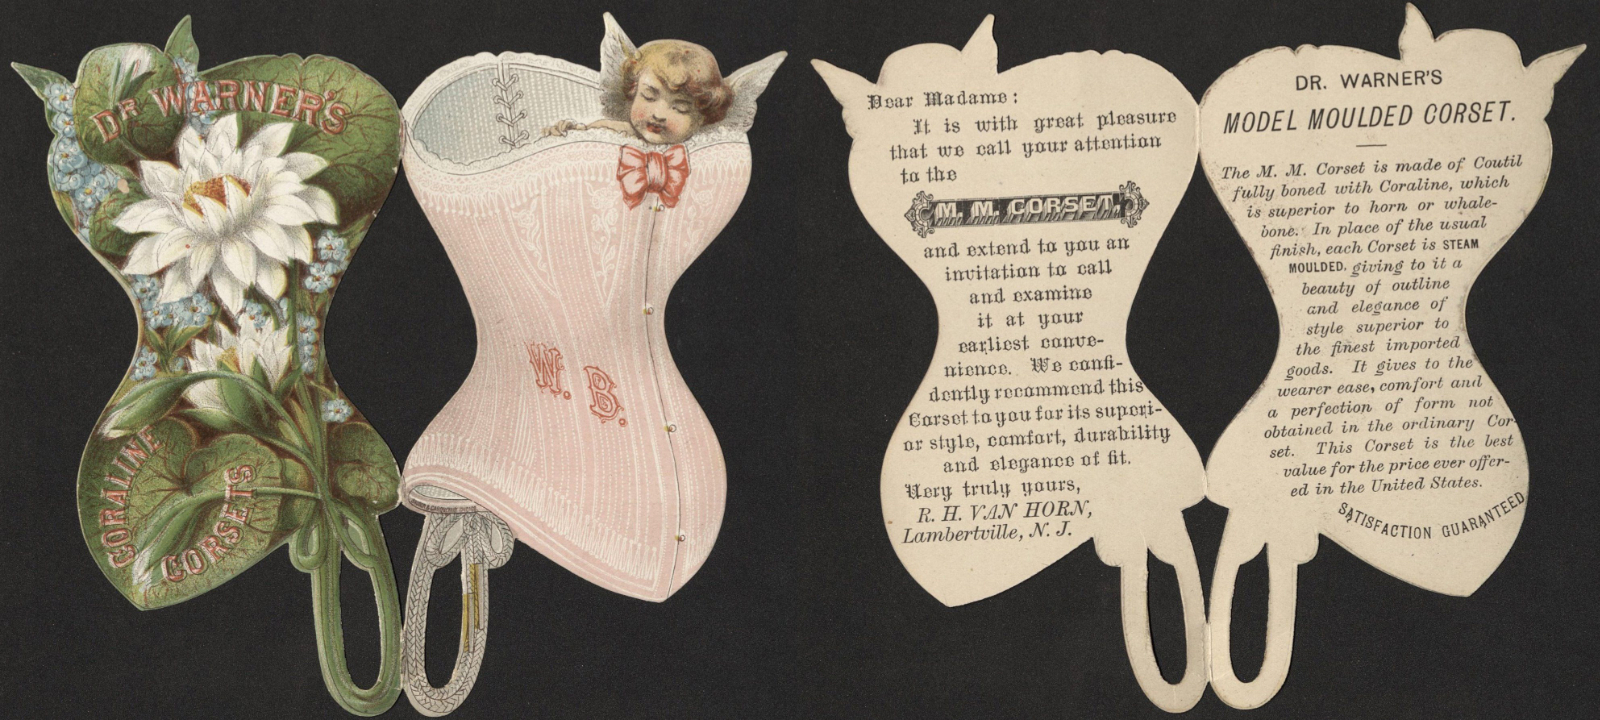 The Corsets History